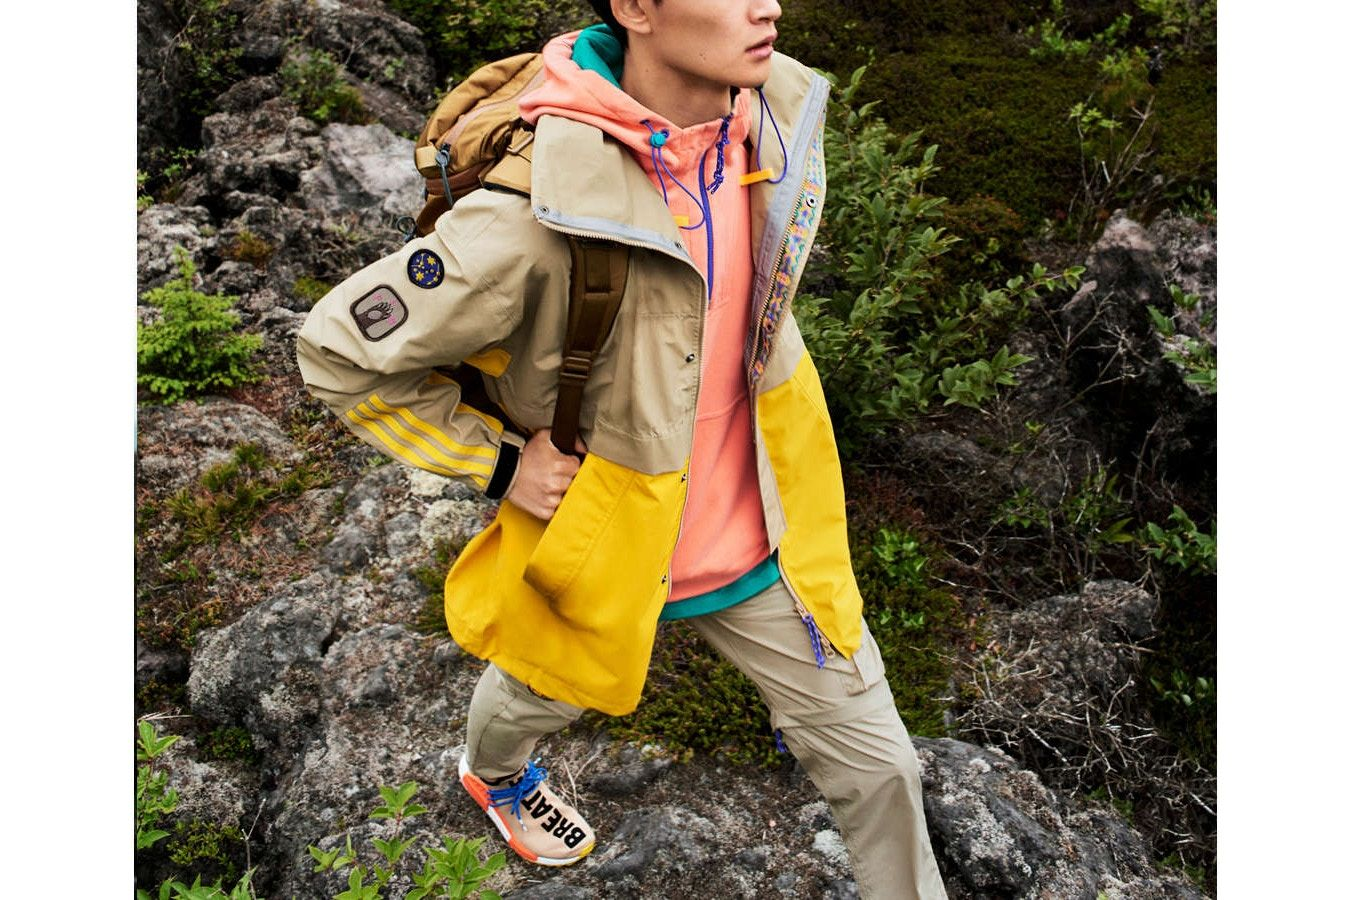 47f646a91b400 Pharrell Williams adidas Originals Statement Hiking Hu NMD Trail Footwear  Outerwear Apparel Fashion Clothing Hiking Outdoors Nature